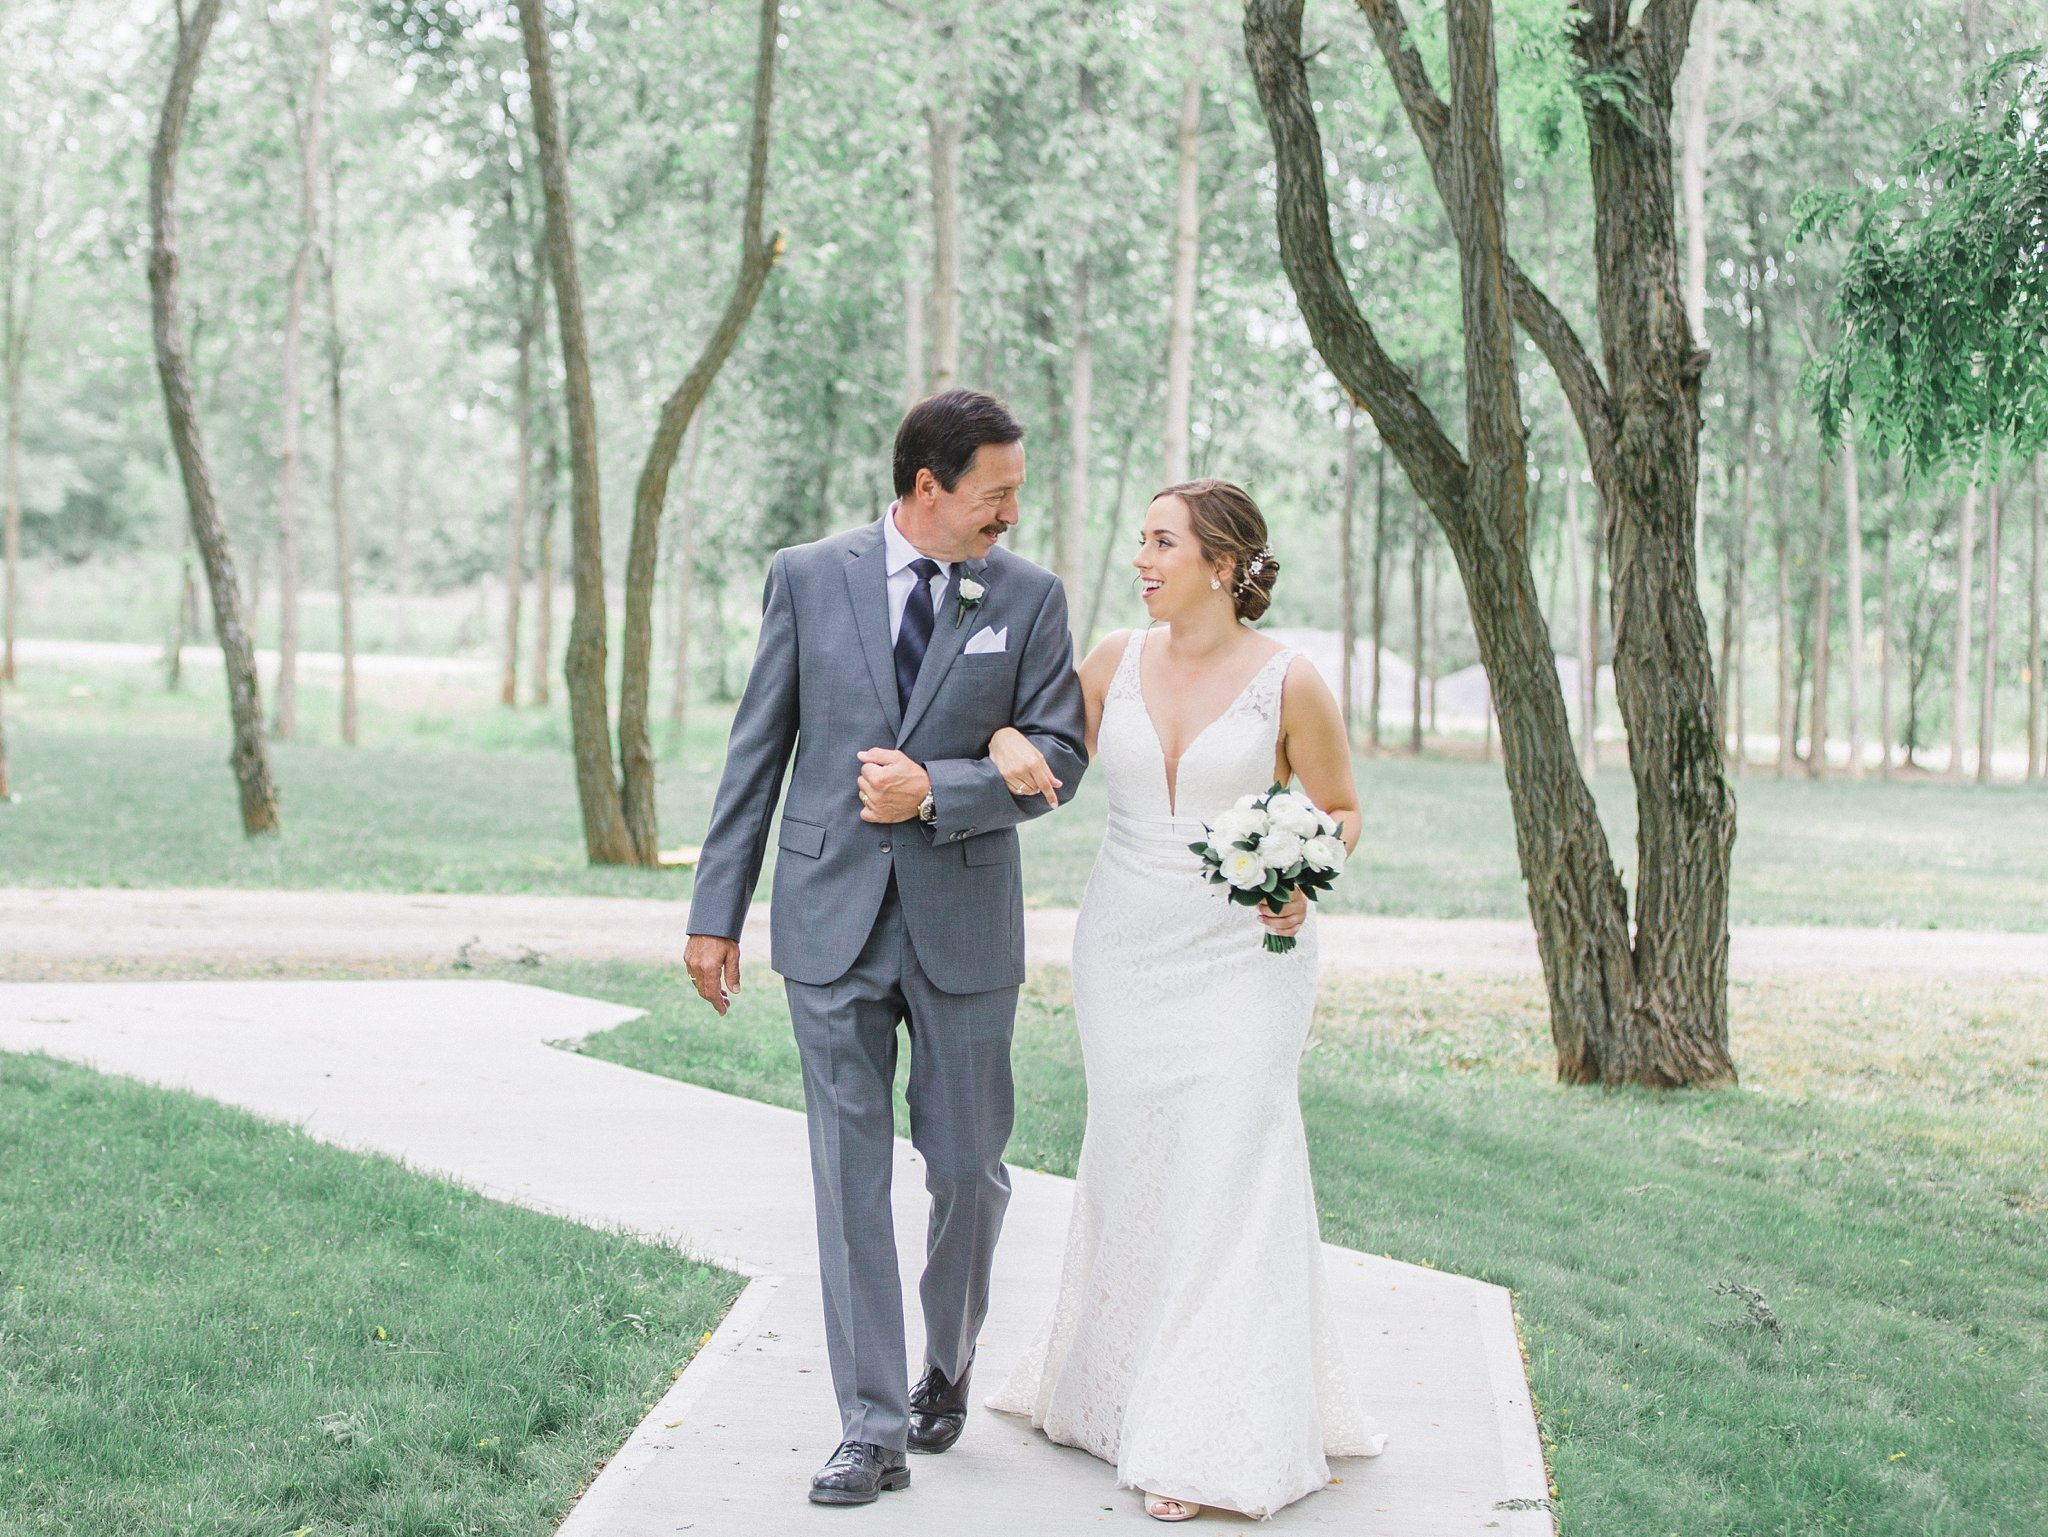 Father walks daughter down the aisle married at Stonefields, Amy Pinder Photography